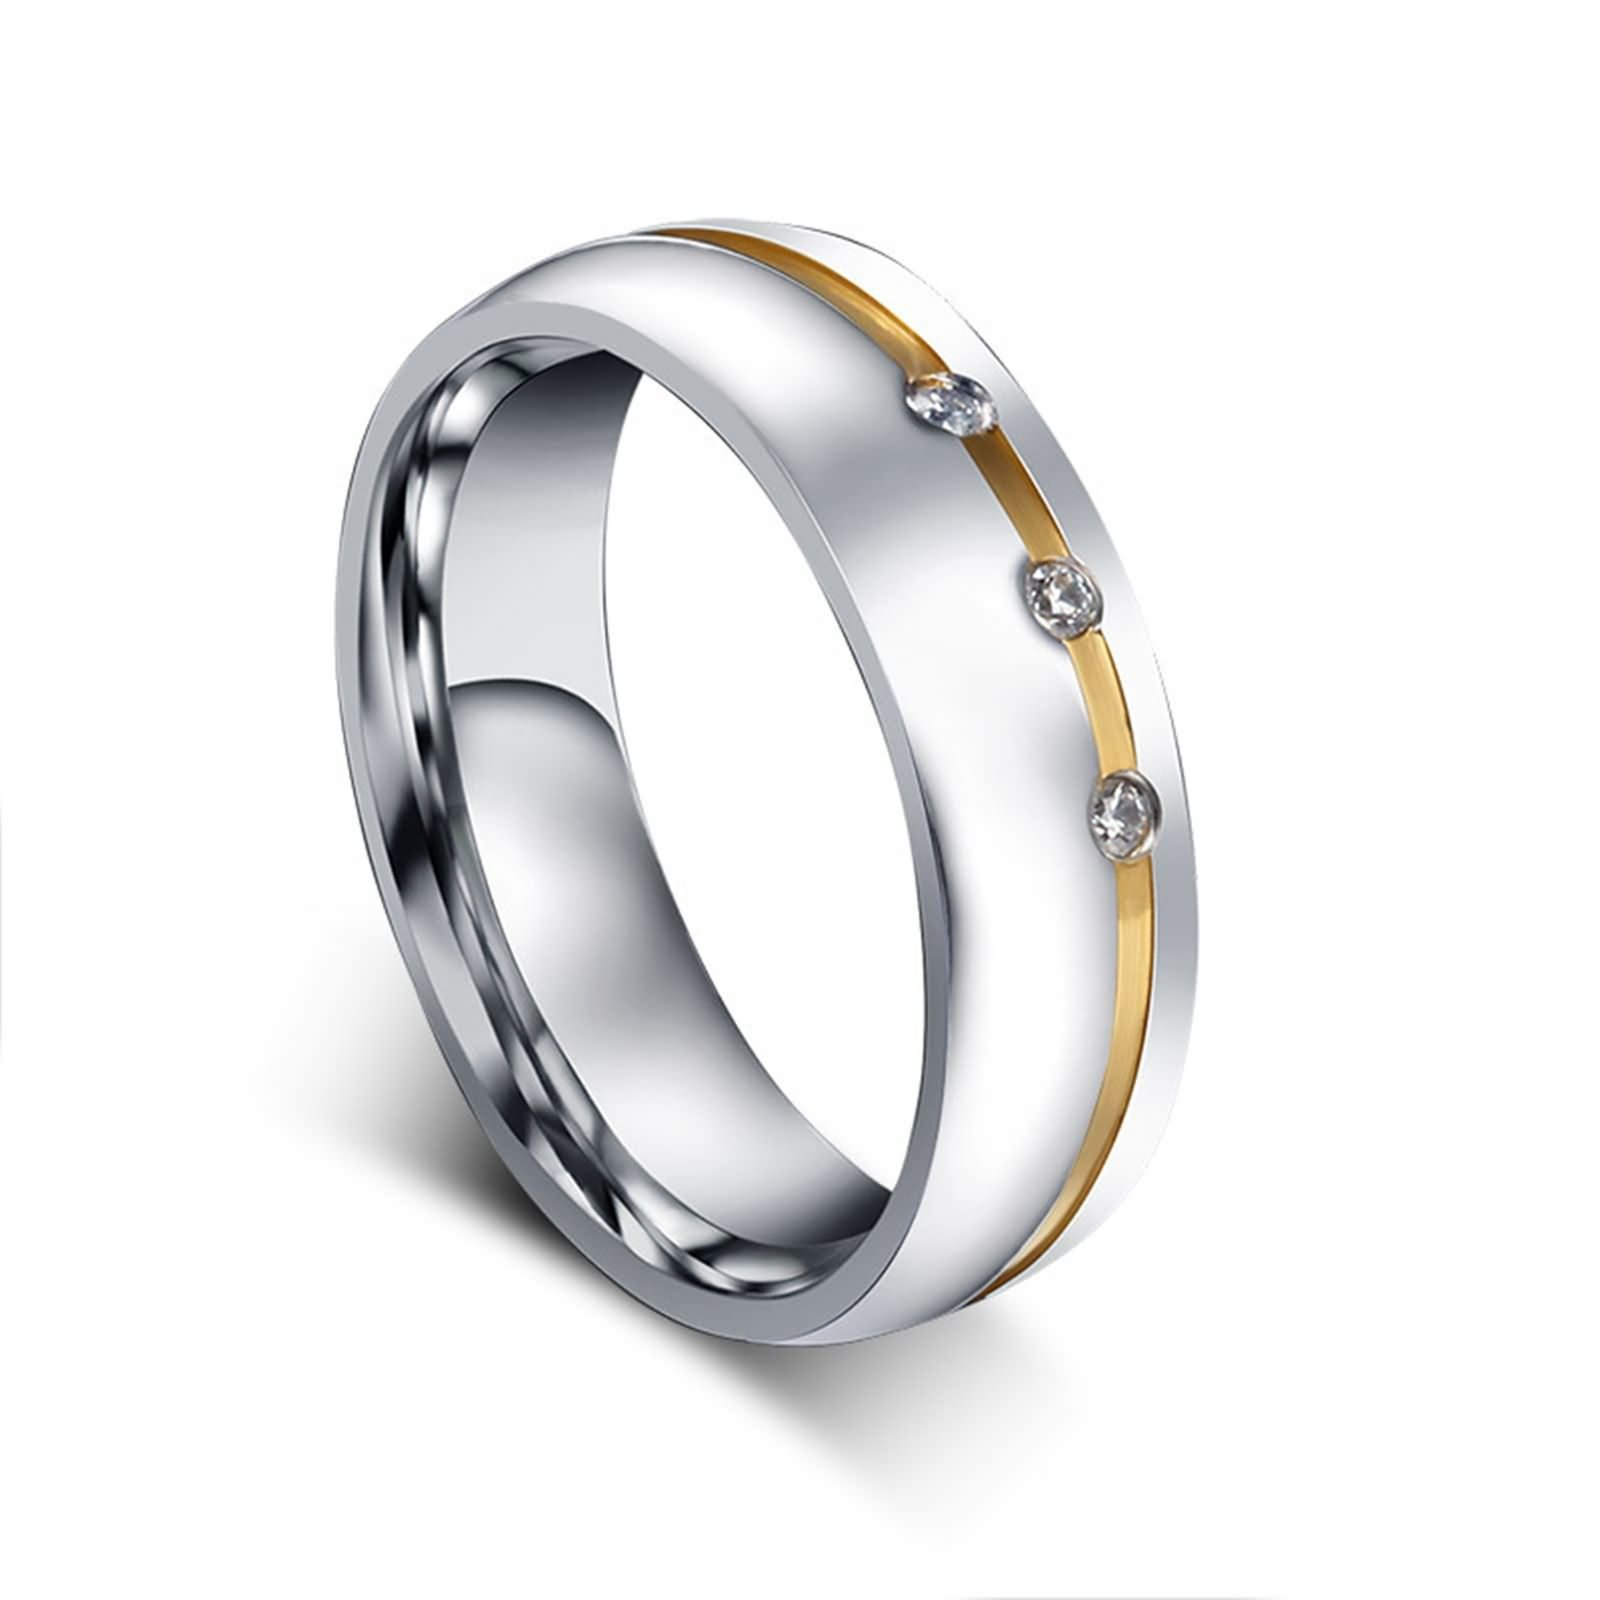 Beydodo Titanium Rings Set for Women Stainless Steel Ring Bands Round CZ Women Size 7 & Men Size 12 by Beydodo (Image #5)